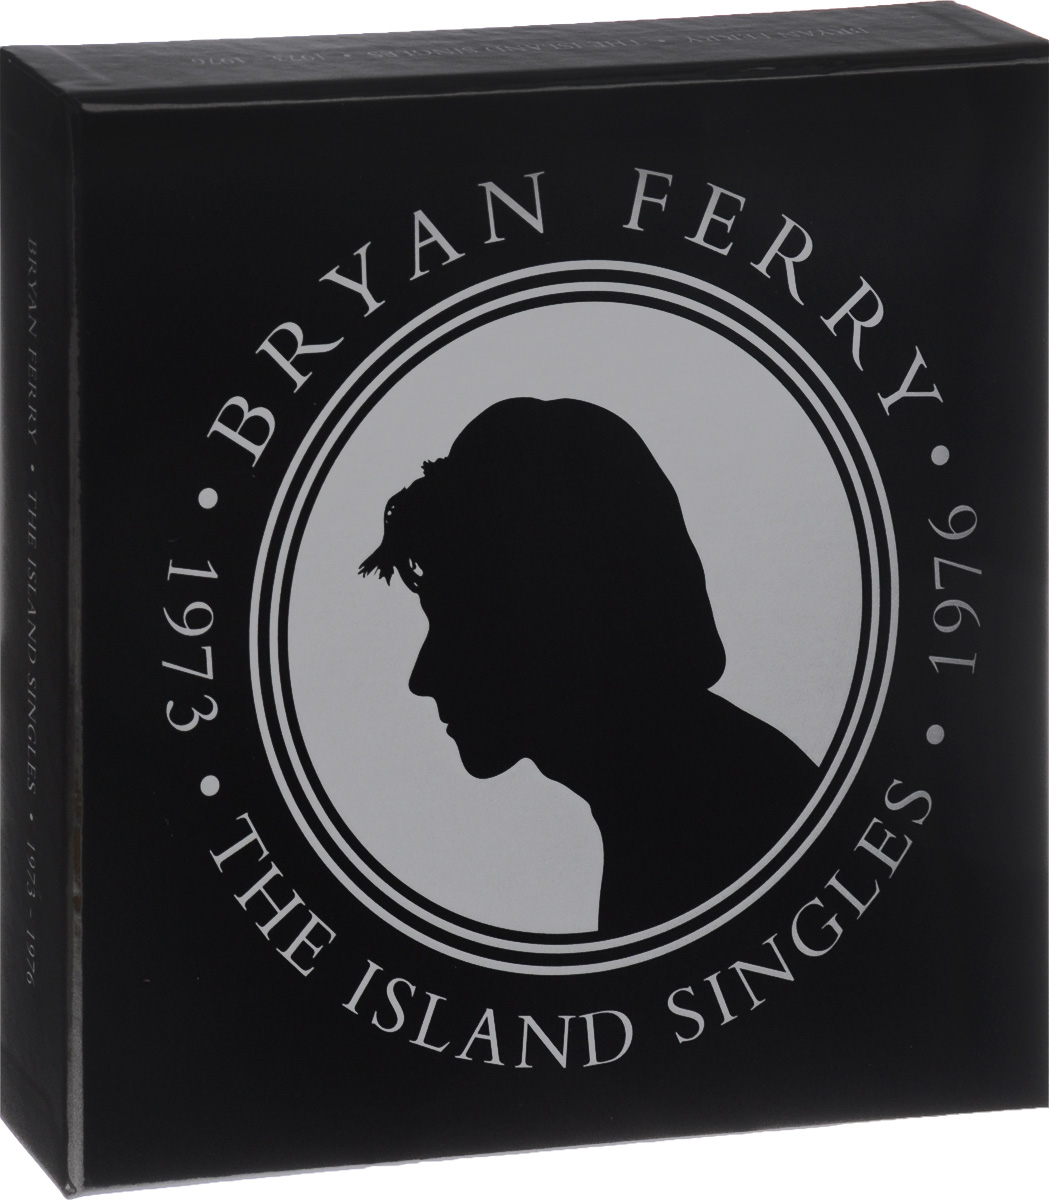 Брайан Ферри Bryan Ferry. The Island Singles. 1973 - 1976 (6 LP) phil collins singles 4 lp